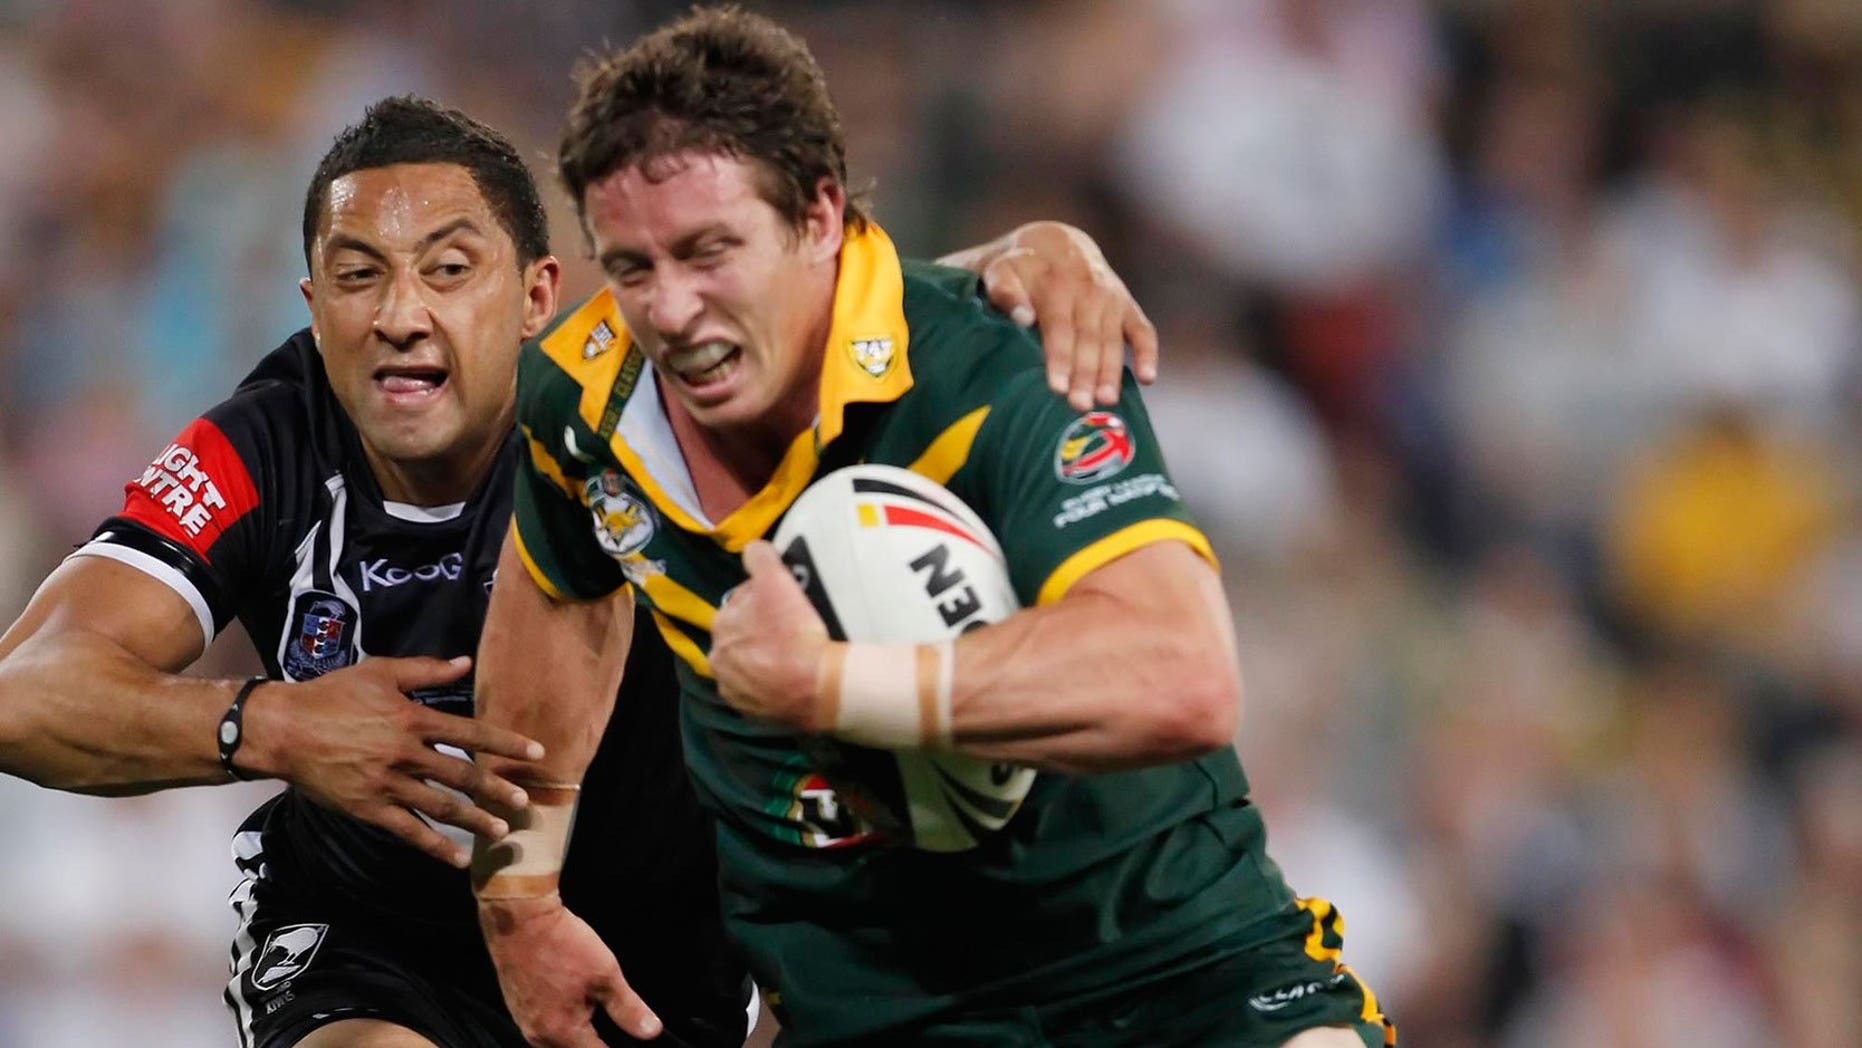 Benji Marshall (L) pictured during a Four Nations Test against Australia in Brisbane on November 13, 2010. The Auckland Blues emerged Saturday as the frontrunner to snap up Marshall who said the prospect of becoming an All Black could motivate him to switch codes.